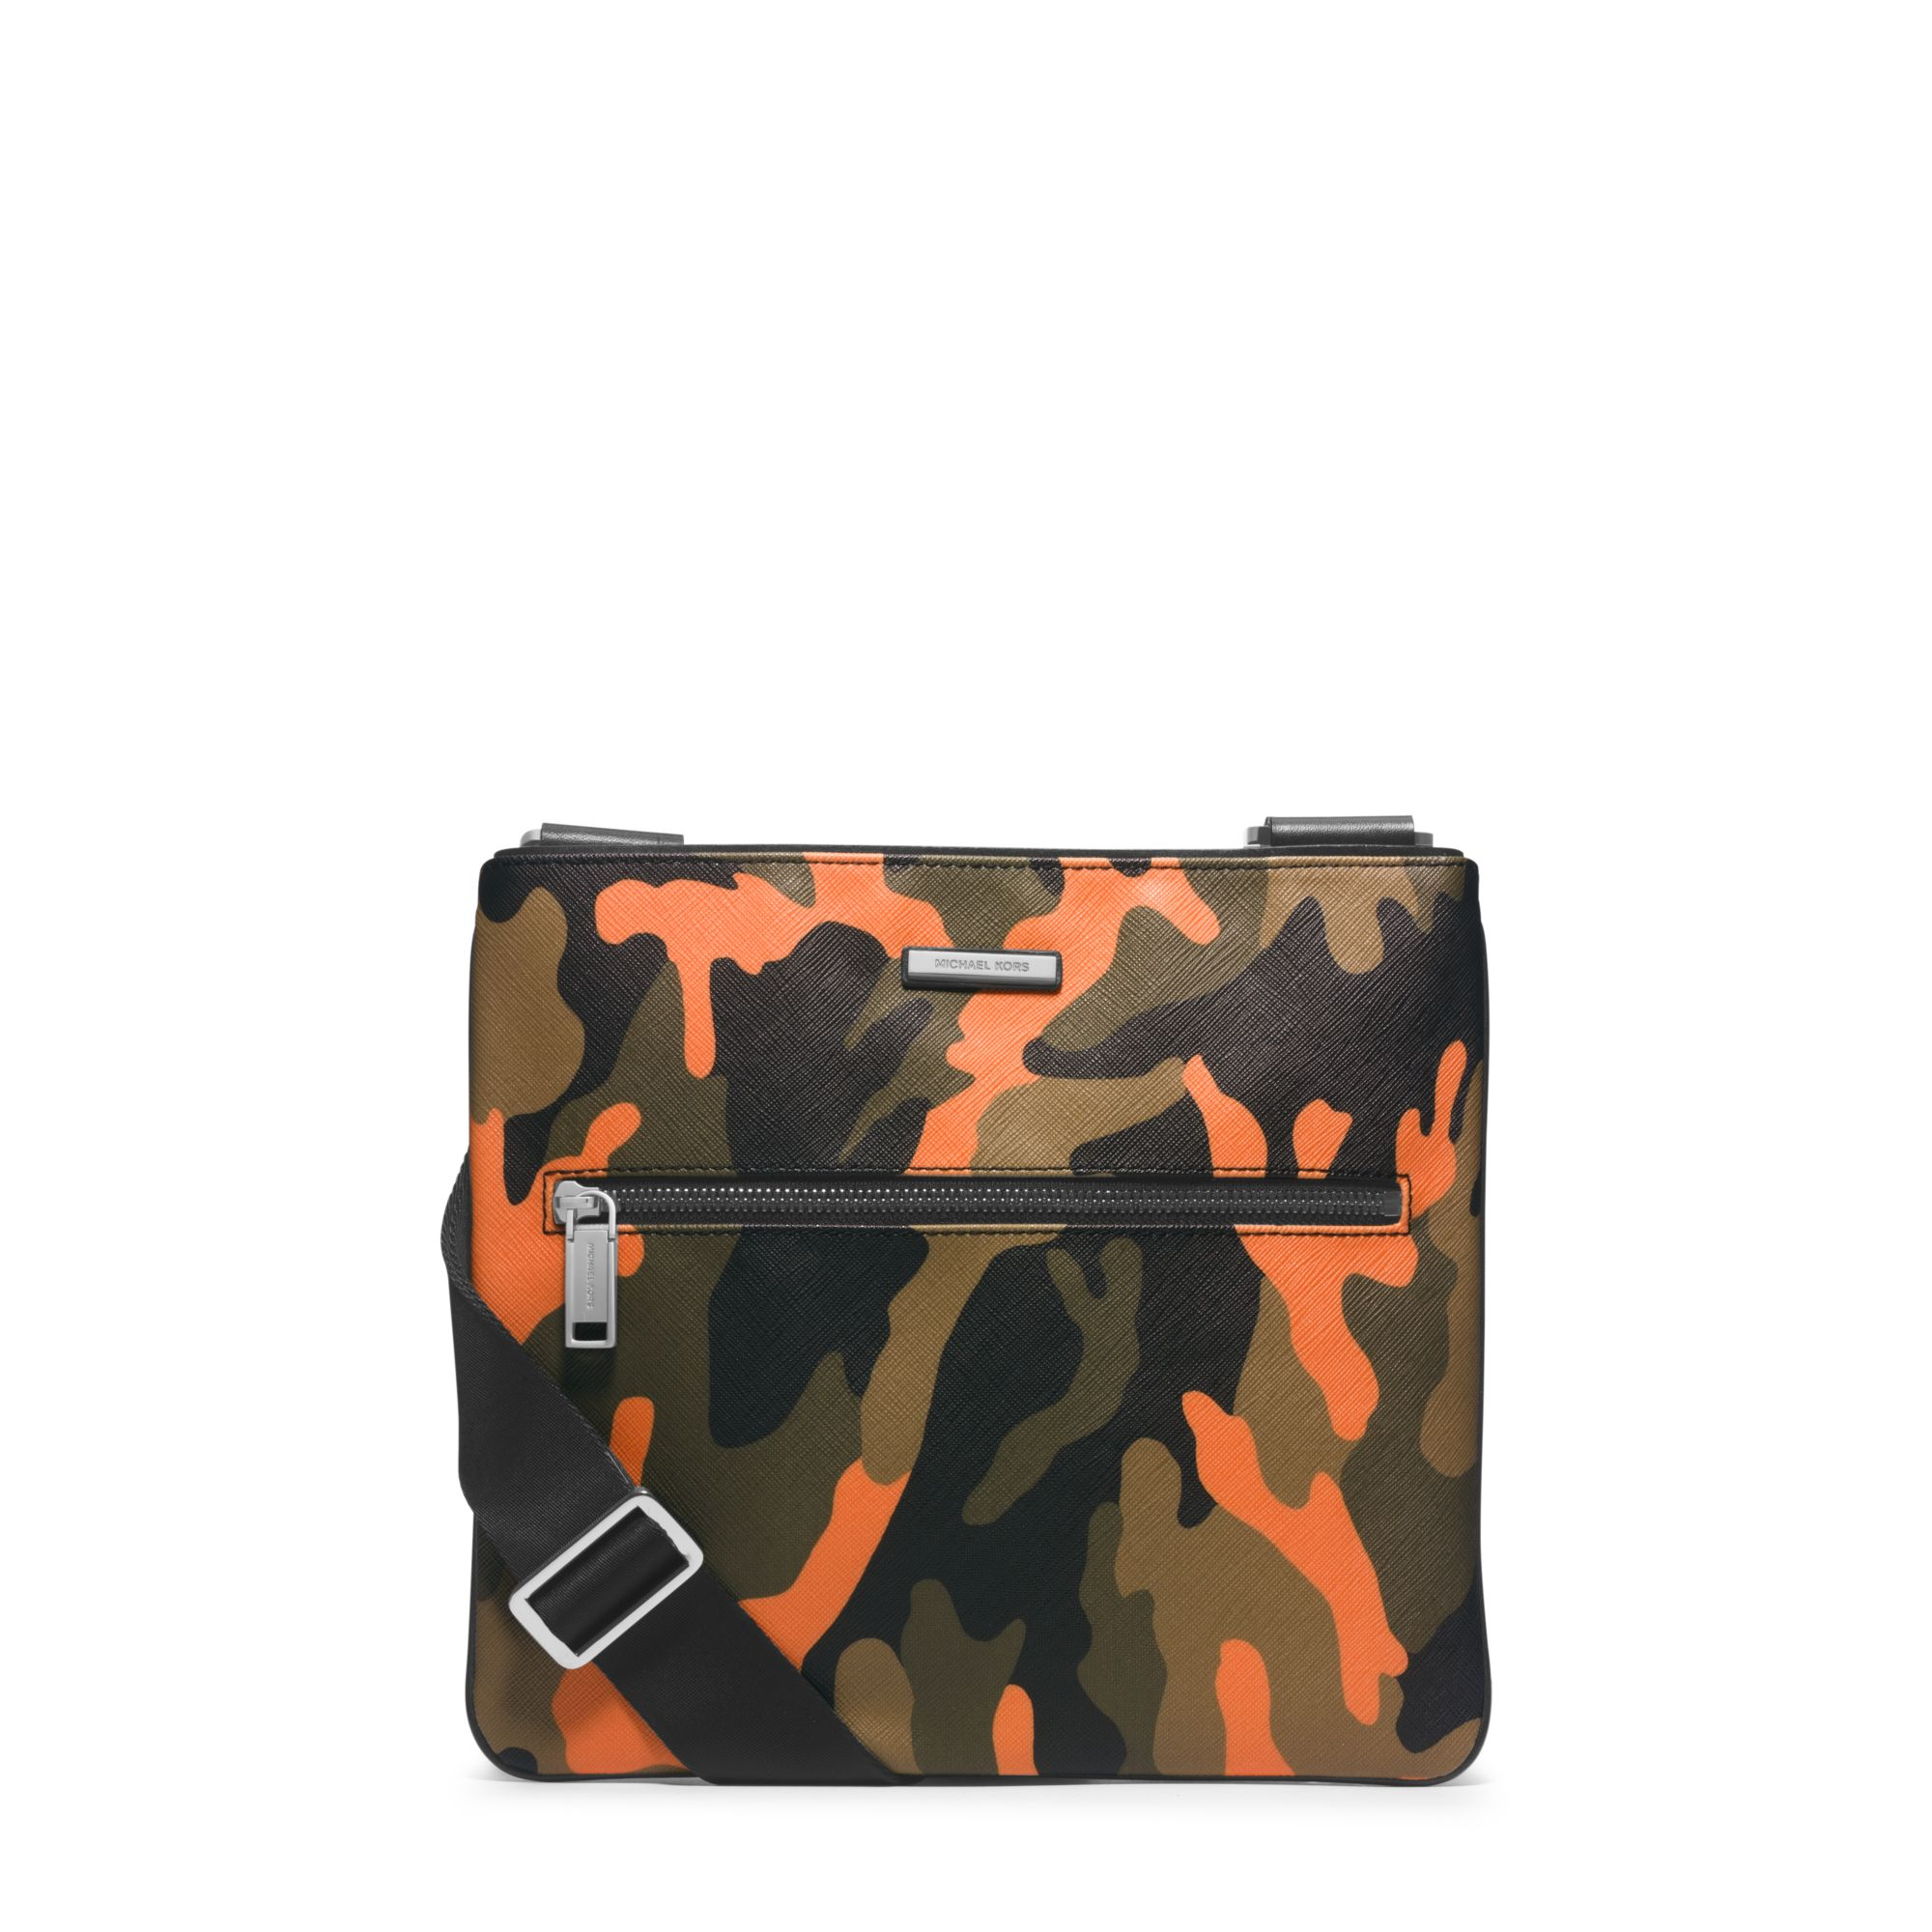 054c454bf1a8 ... cheap lyst michael kors jet set mens camouflage small crossbody in  f4974 34231